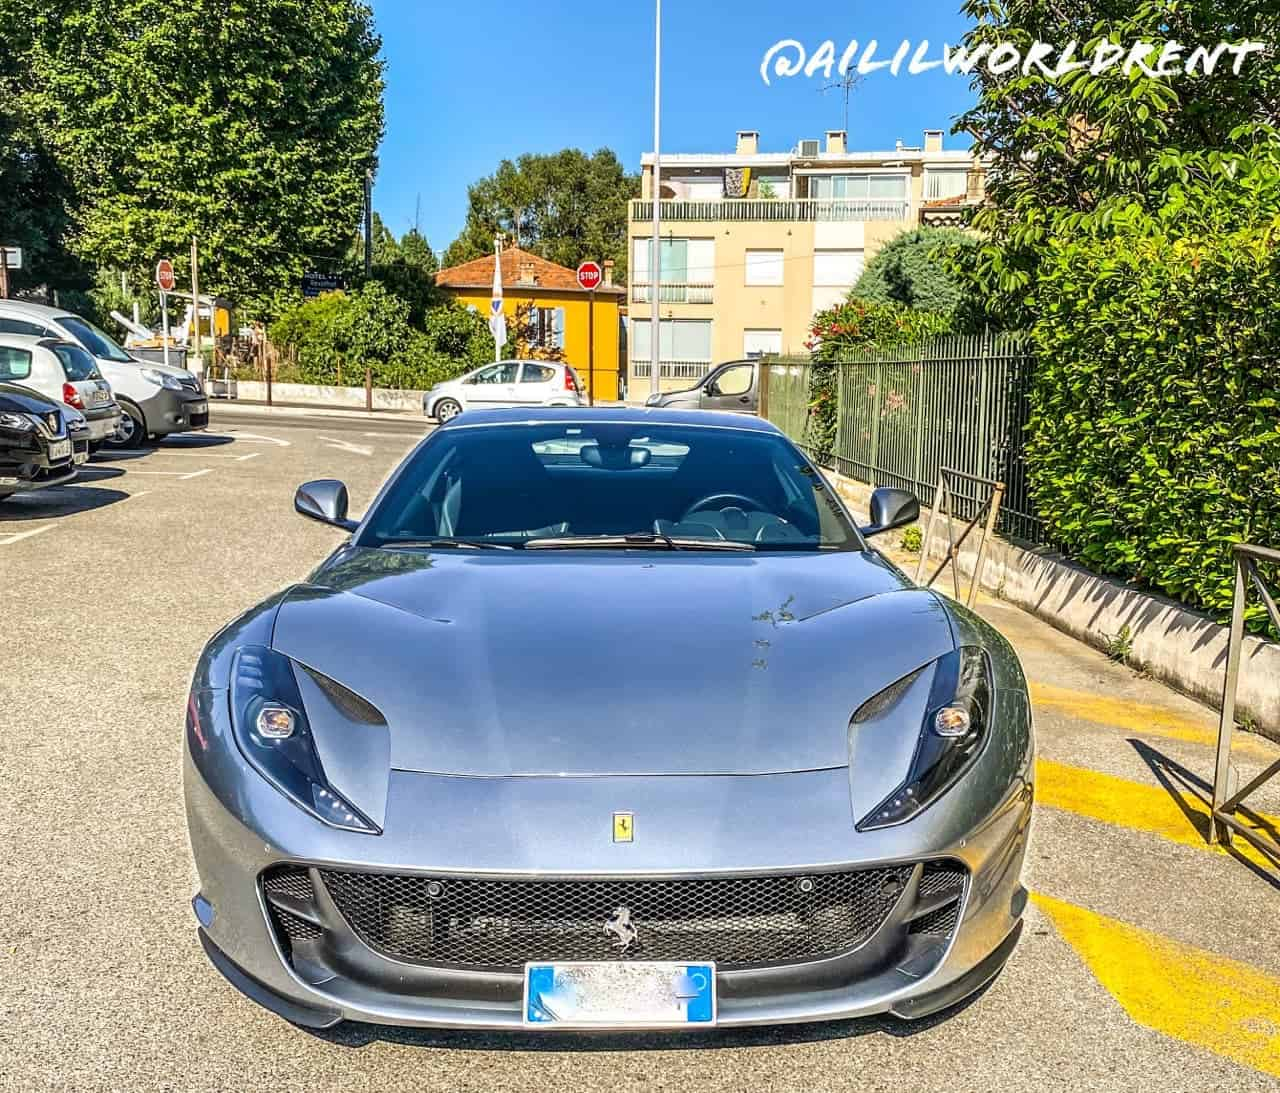 rent-ferrari-812-superfast-in-cennes-for-coupe-days-ailil-world-rent